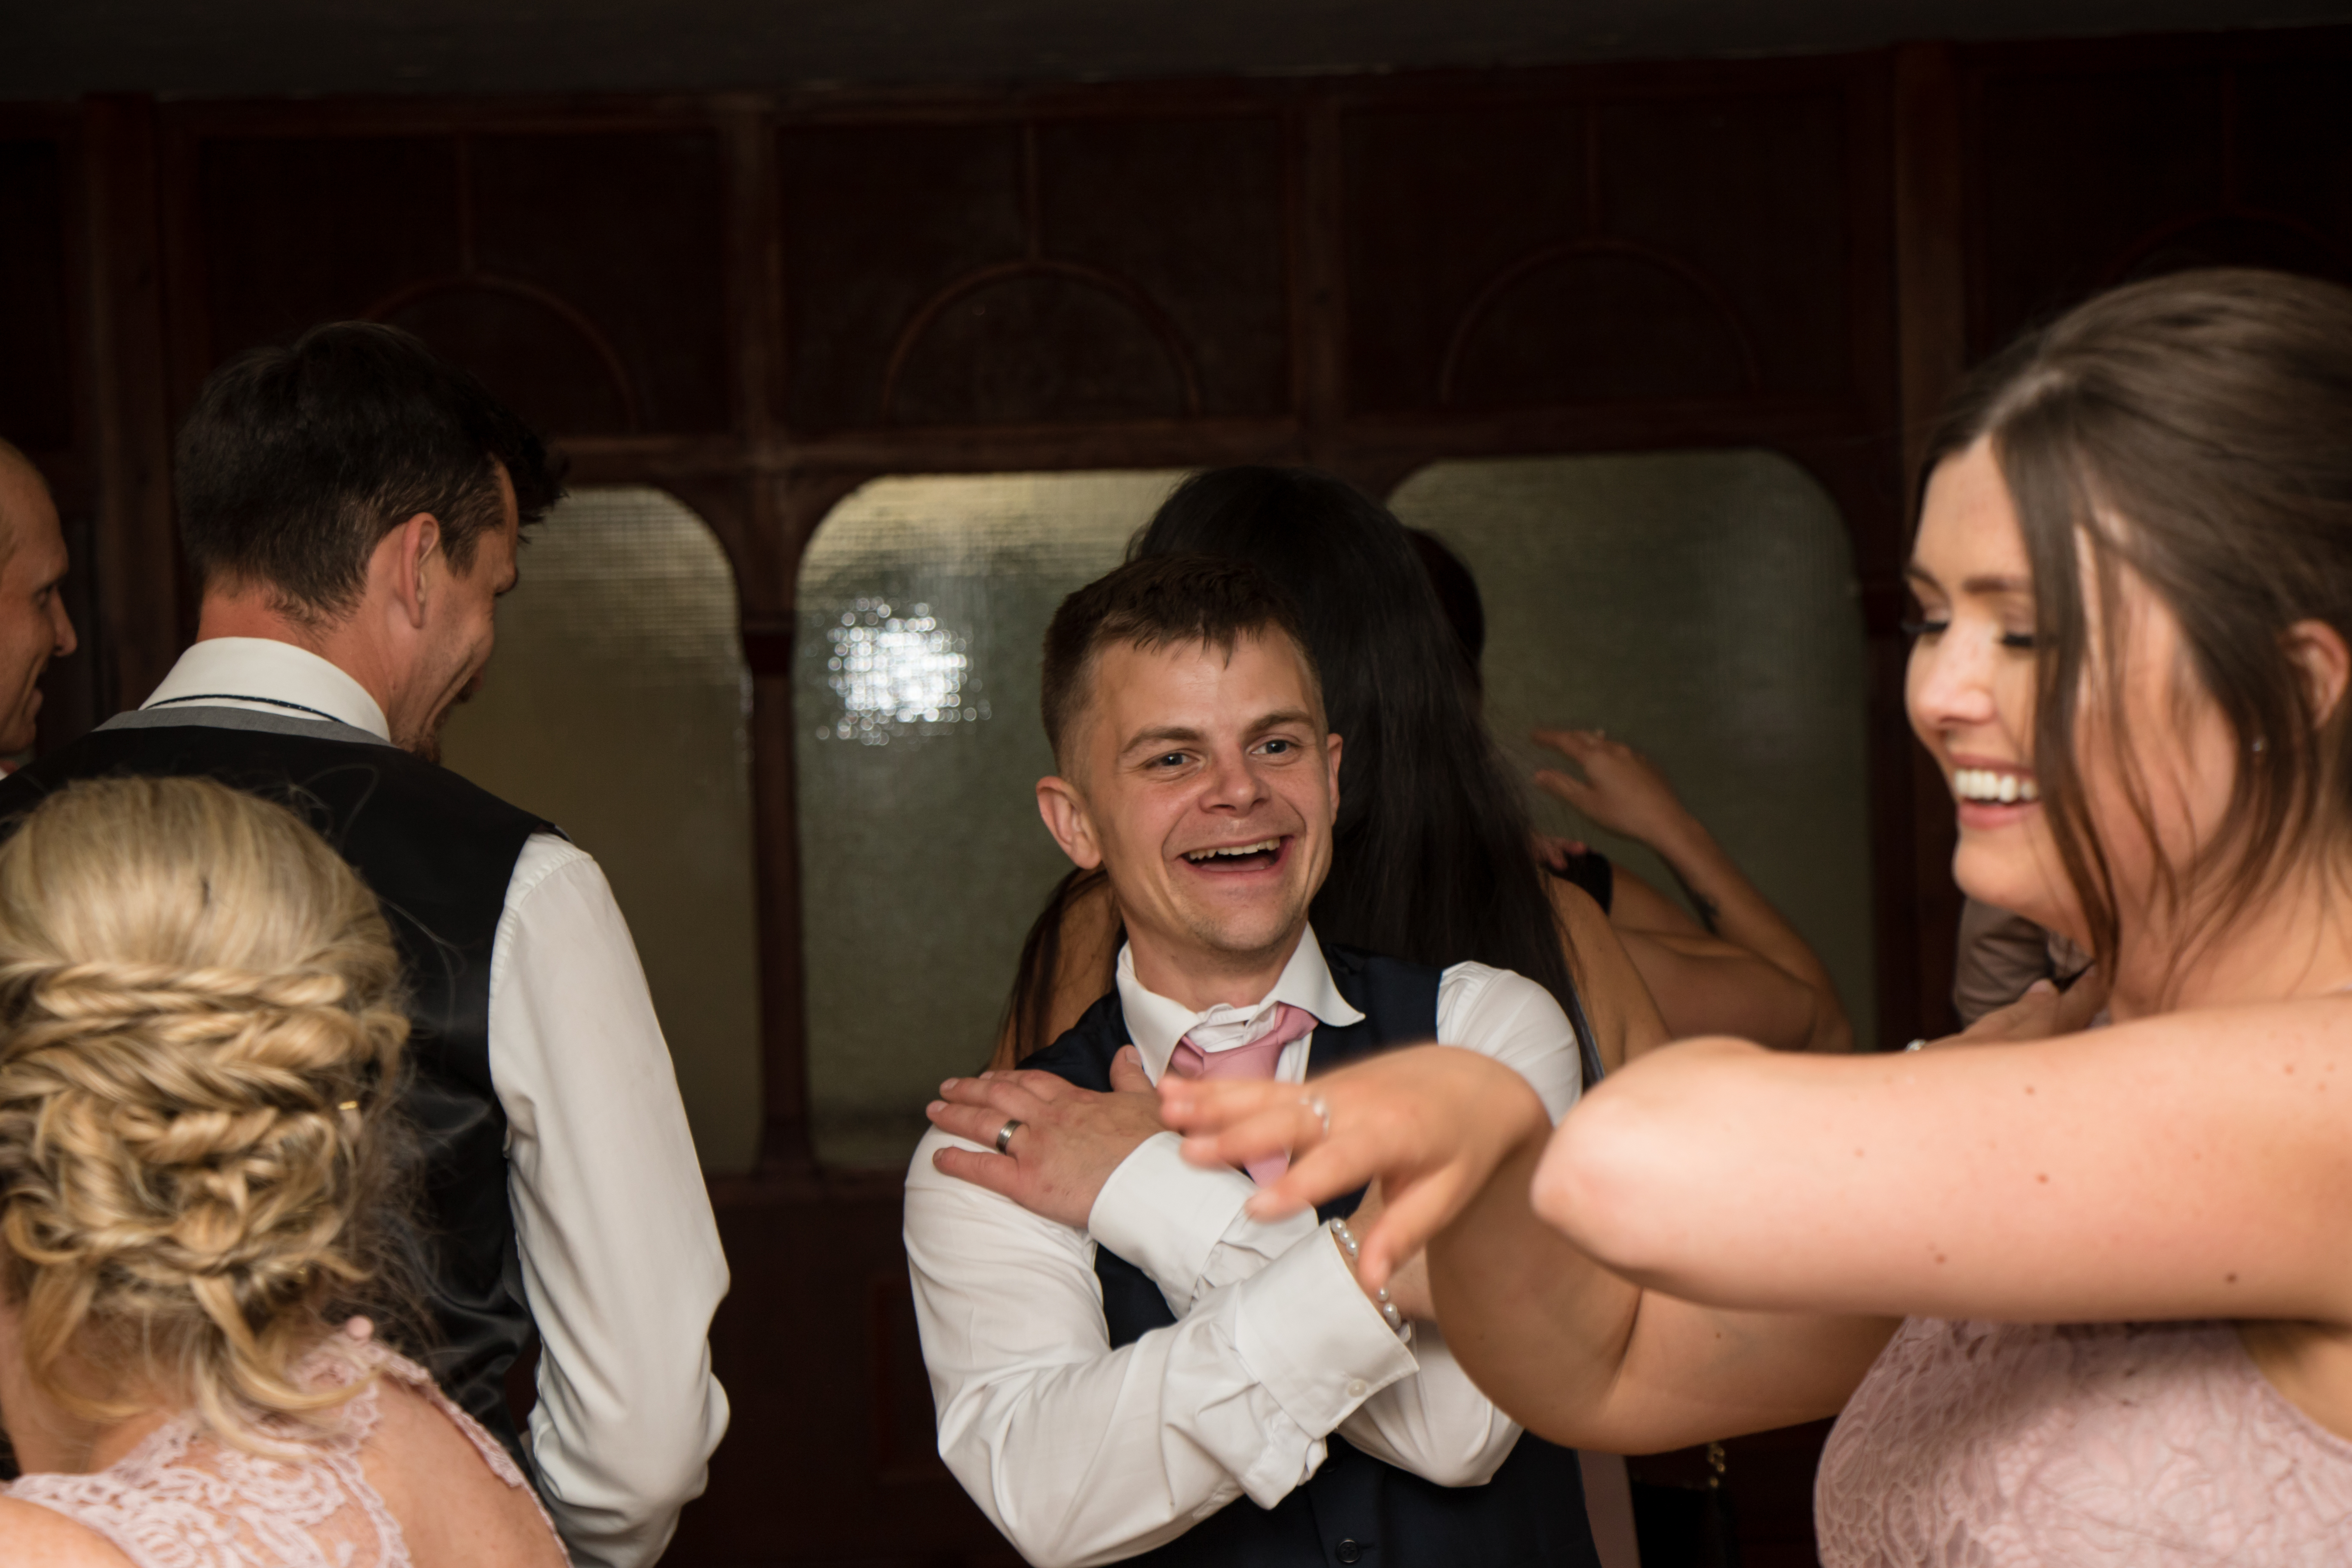 The groom getting in on the dance floor action with party DJ Cornwall.